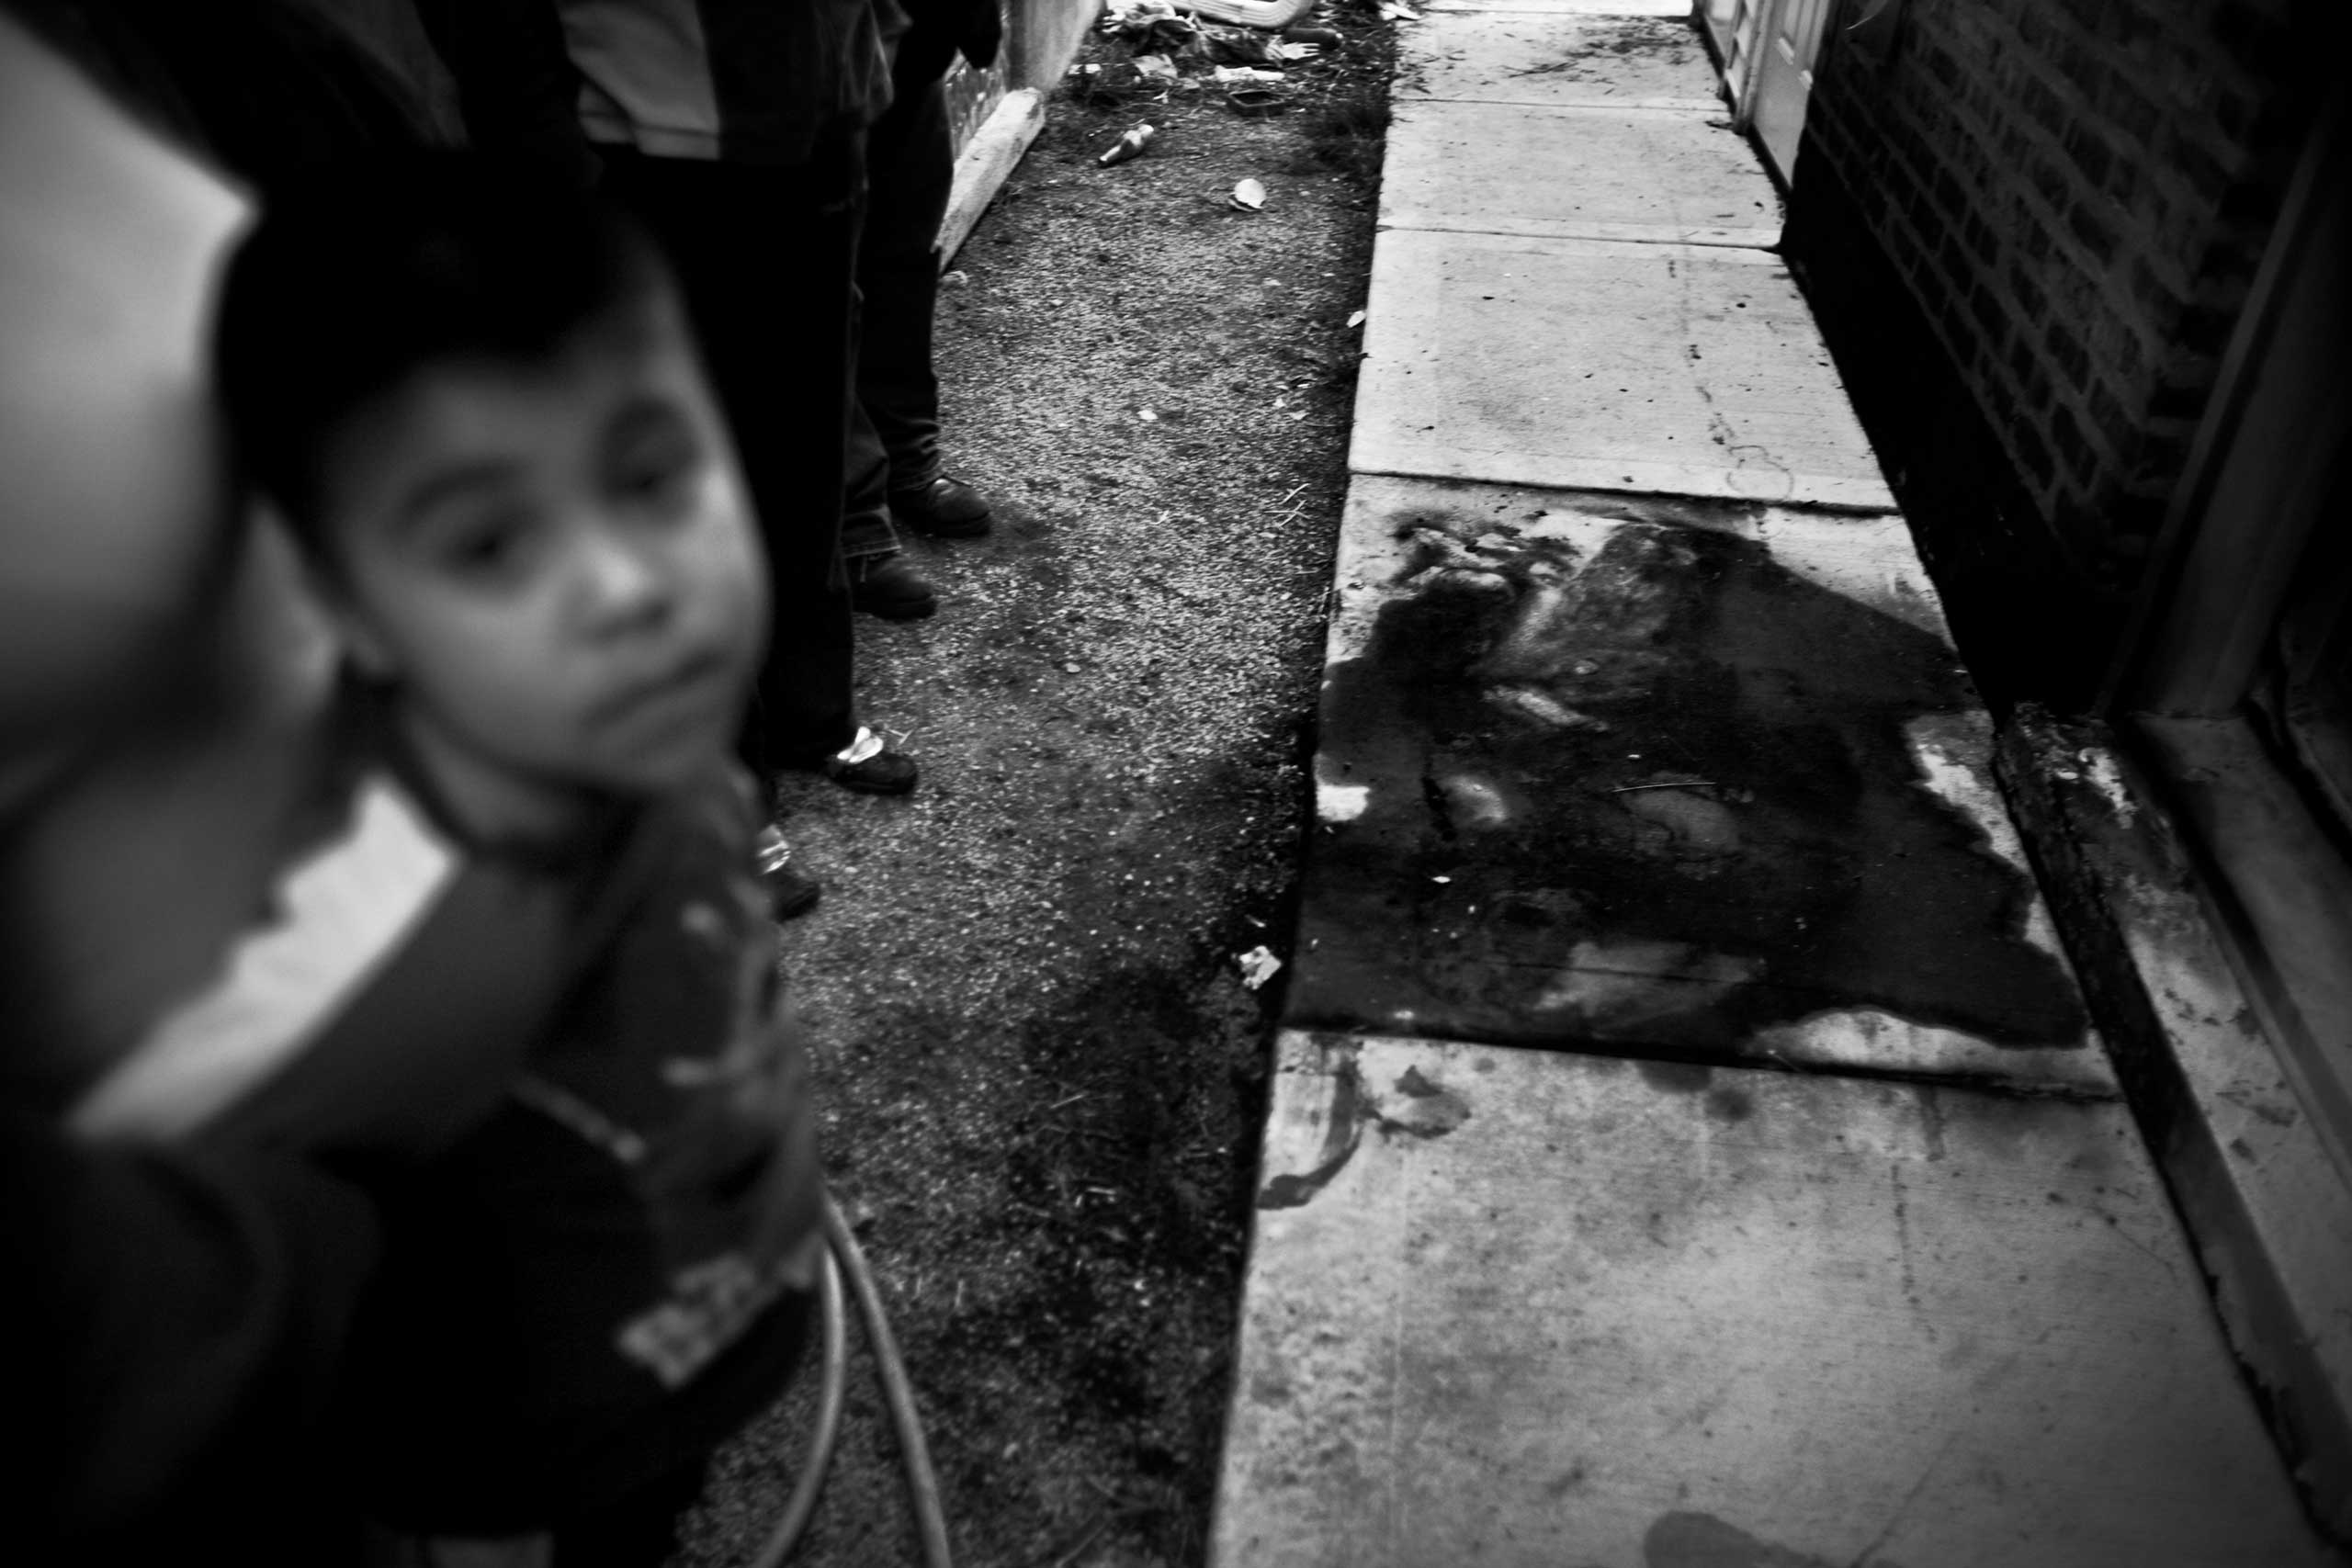 Alex Arellano, 15, was shot and burned after being hit with bats and then struck by a car that was chasing him. Gage Park, Chicago, 2009.                                                                      Side caption: Burn marks in the gangway where 15-year-old Alex Arellano was murdered.